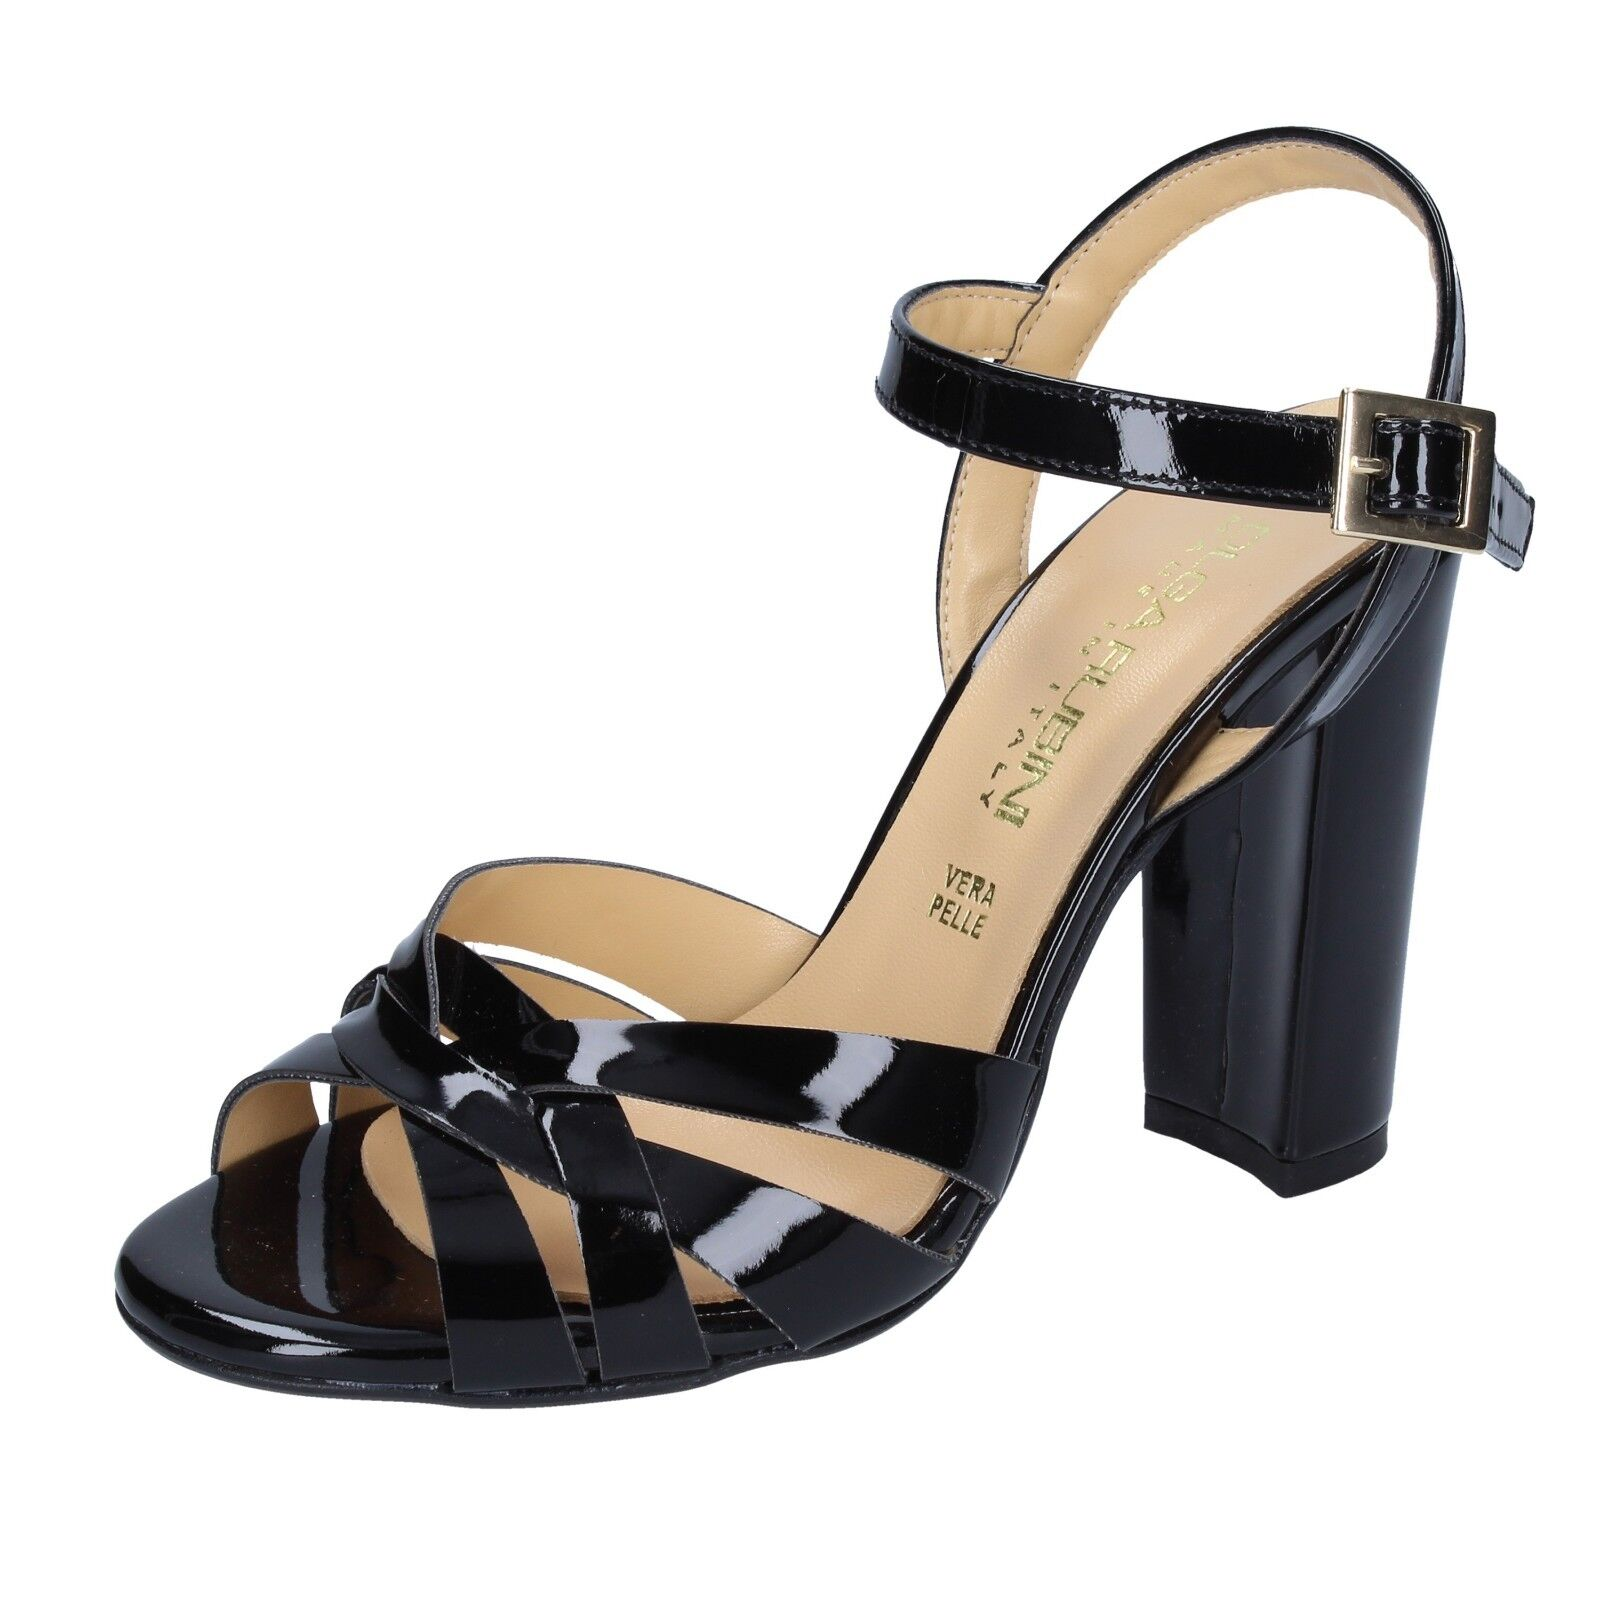 Women's shoes OLGA RUBINI 3 (EU 36) sandals black patent leather BS115-36